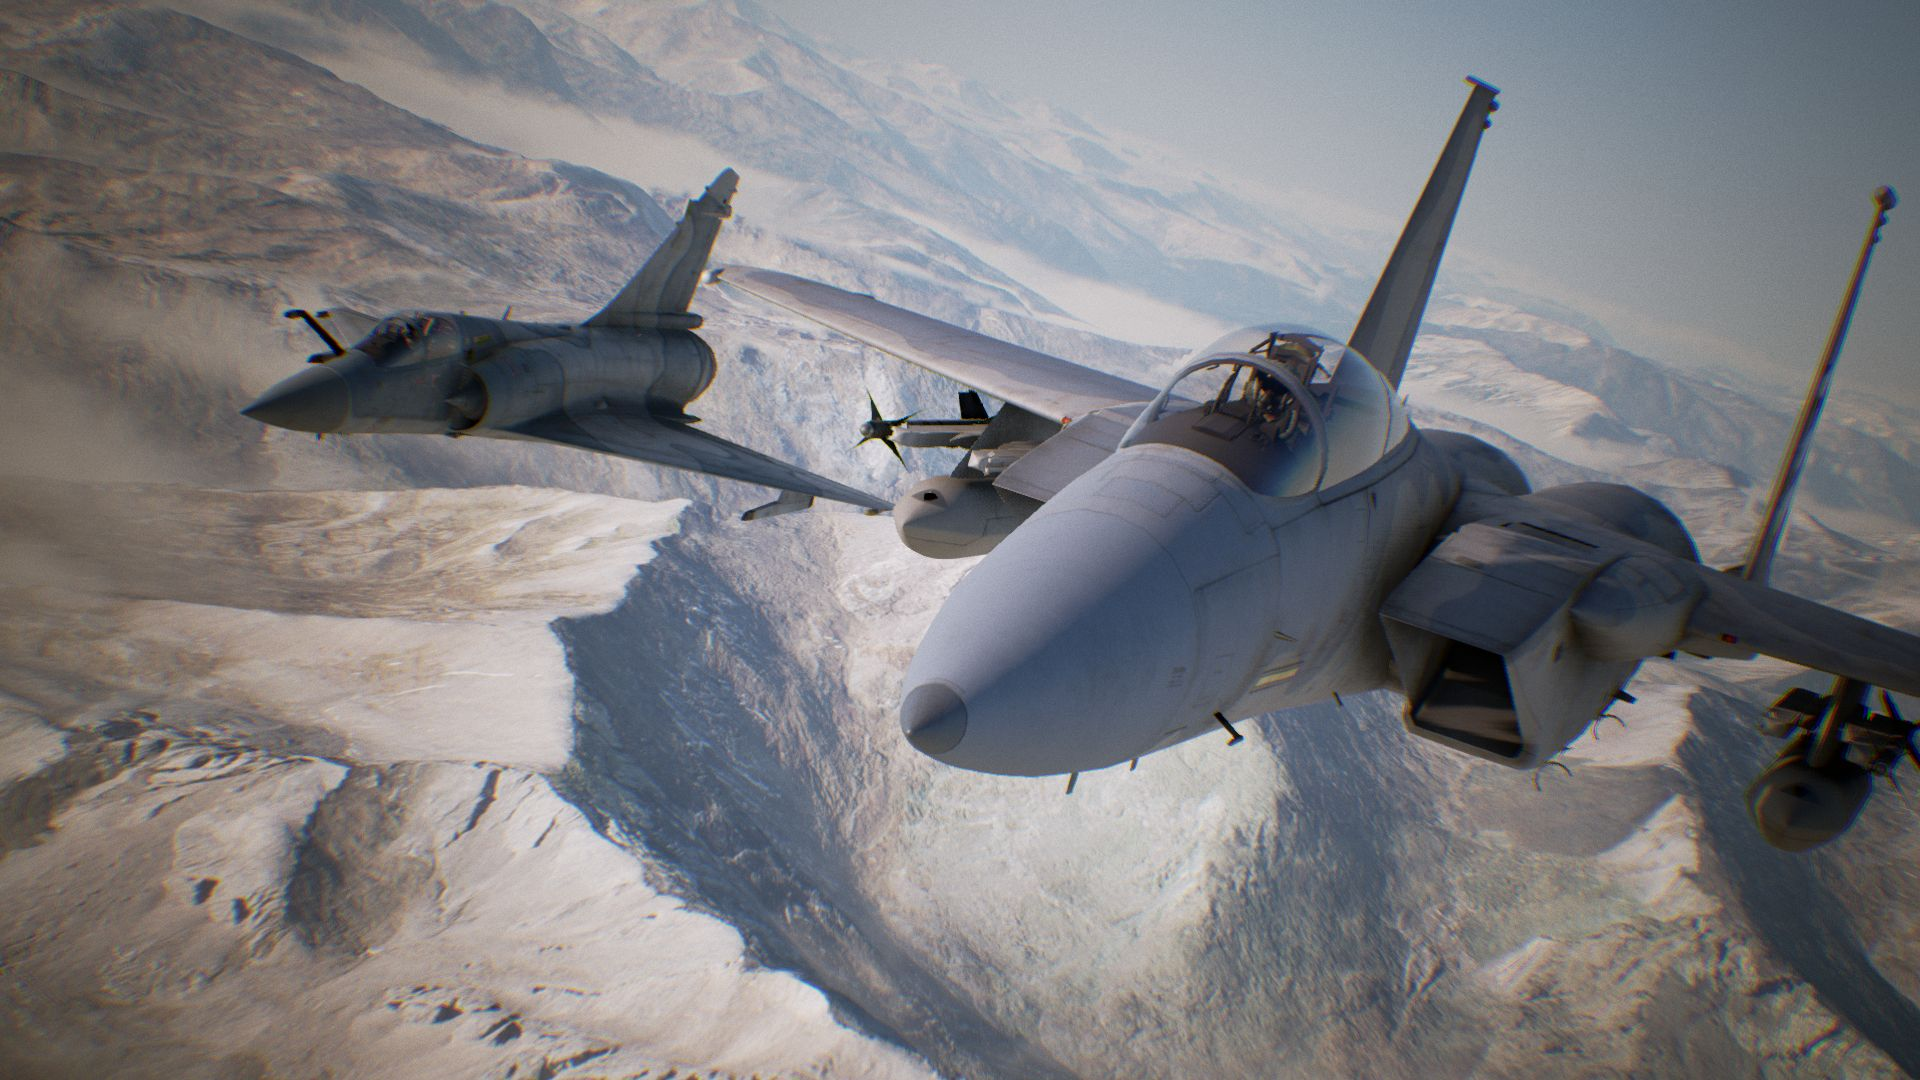 Ace Combat 7 Screenshot of Two Planes Flying